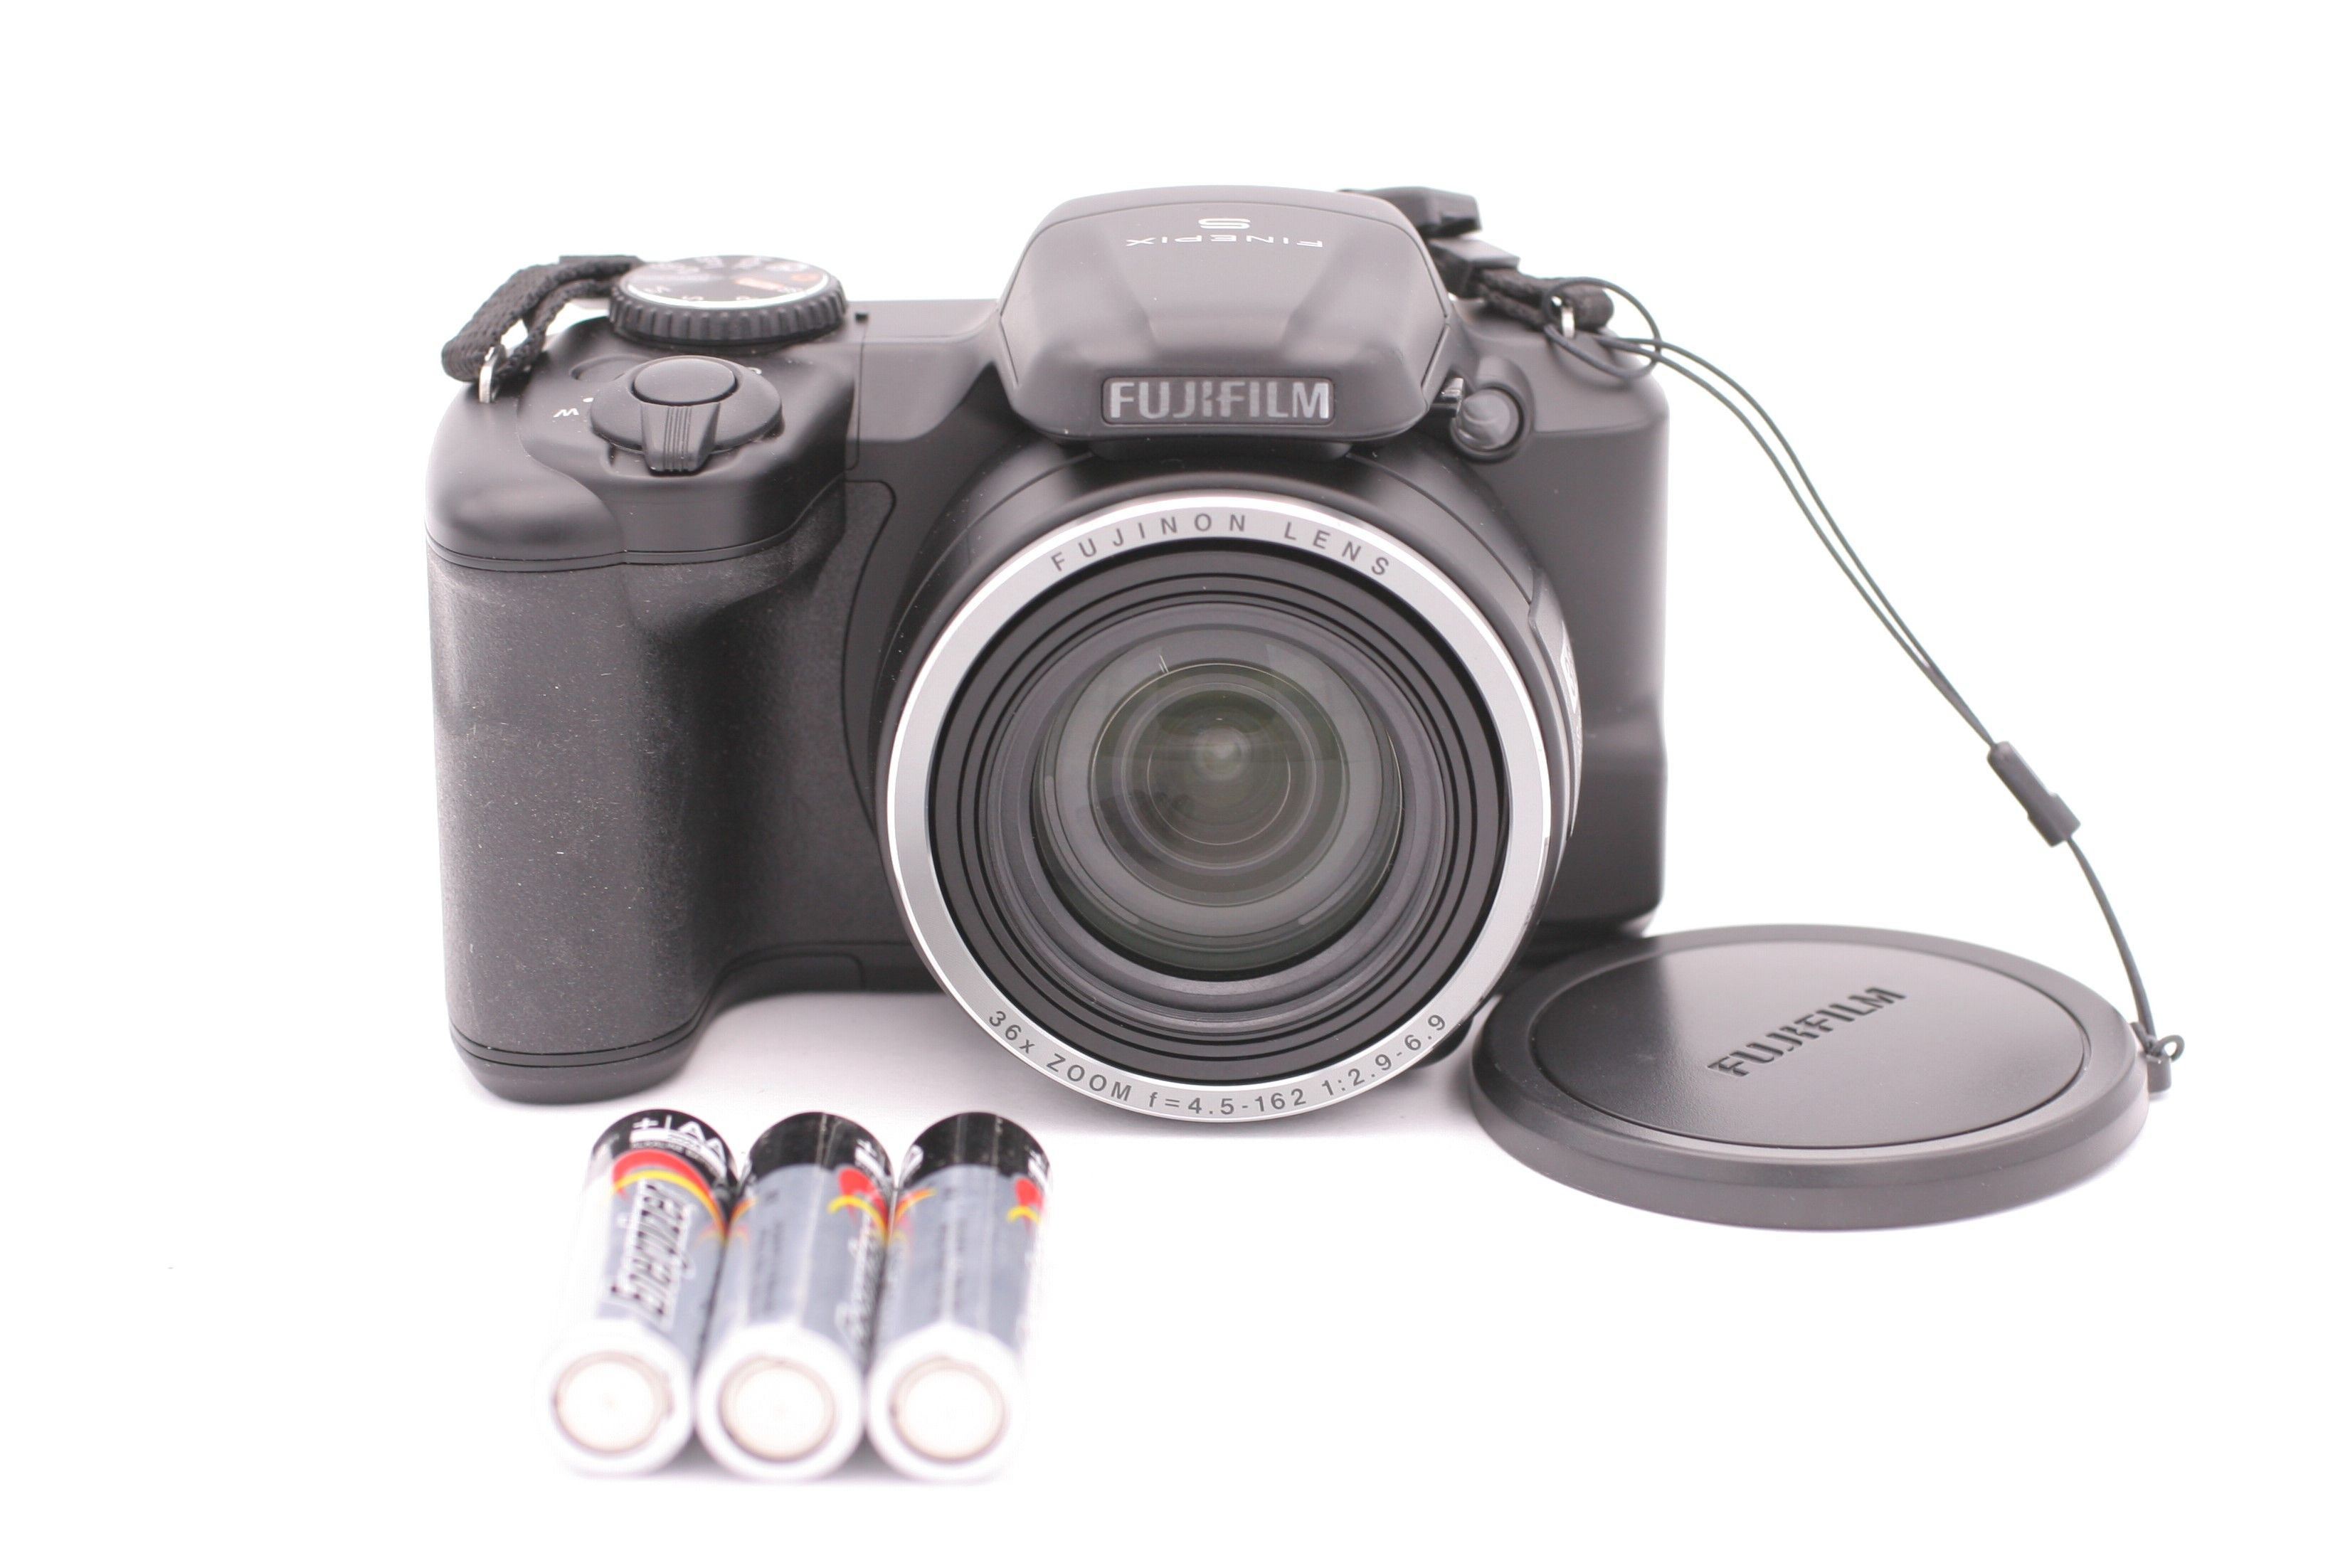 fujifilm finepix s8600 manual